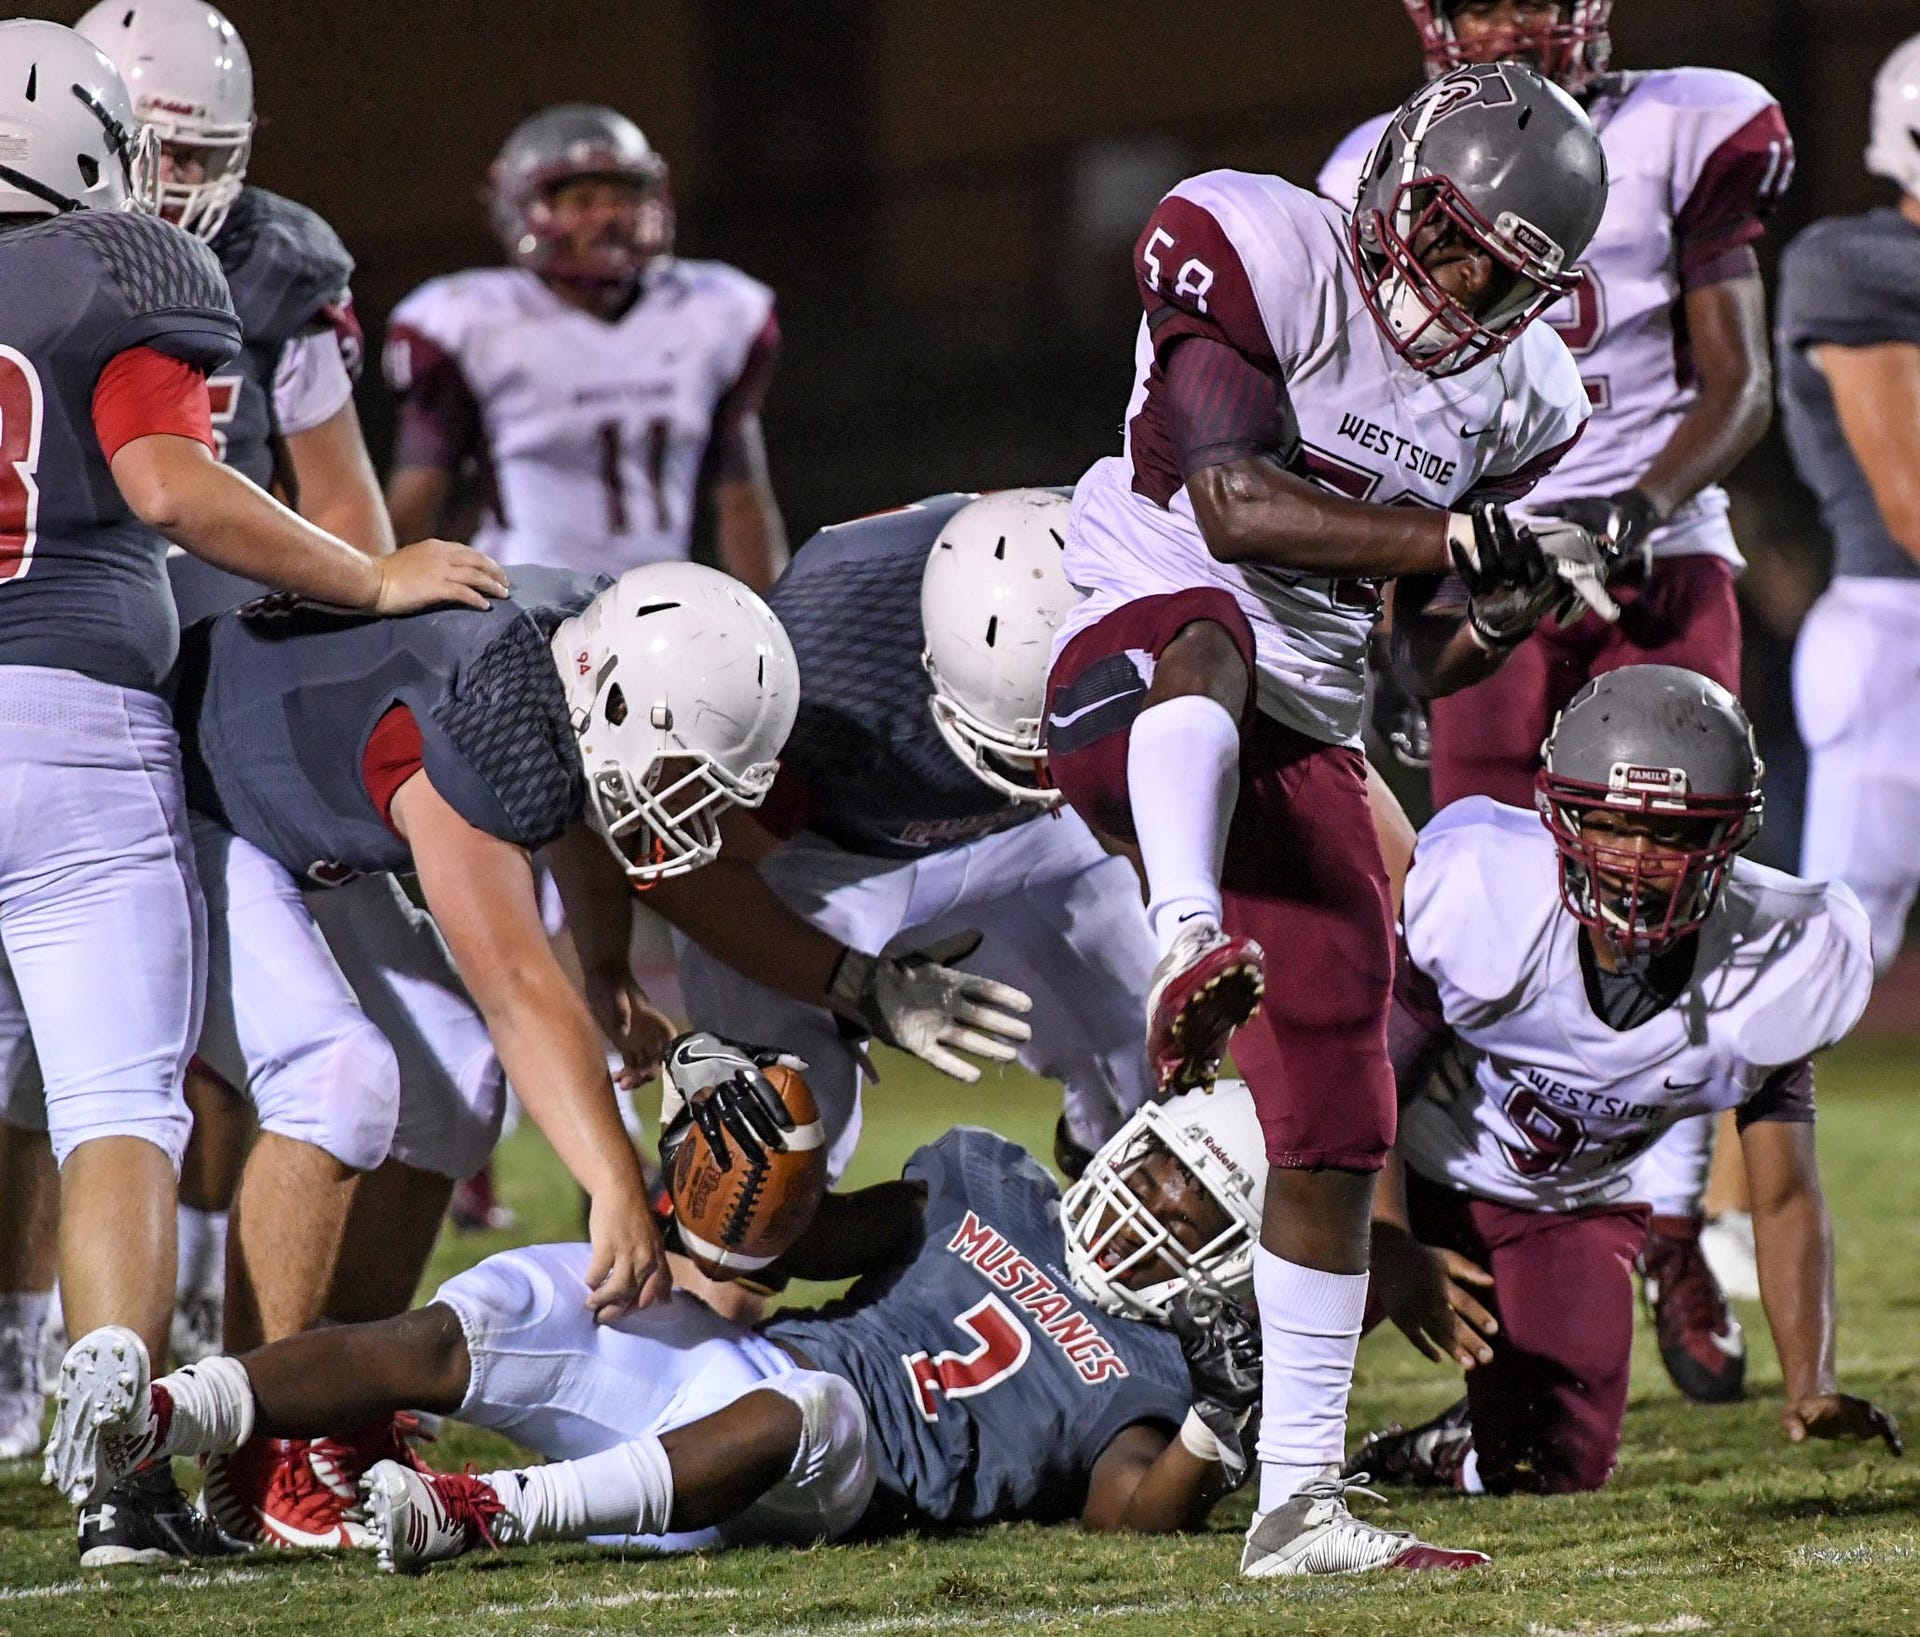 Anderson County Fca Football Jamboree Showcases Talent From Eight Teams